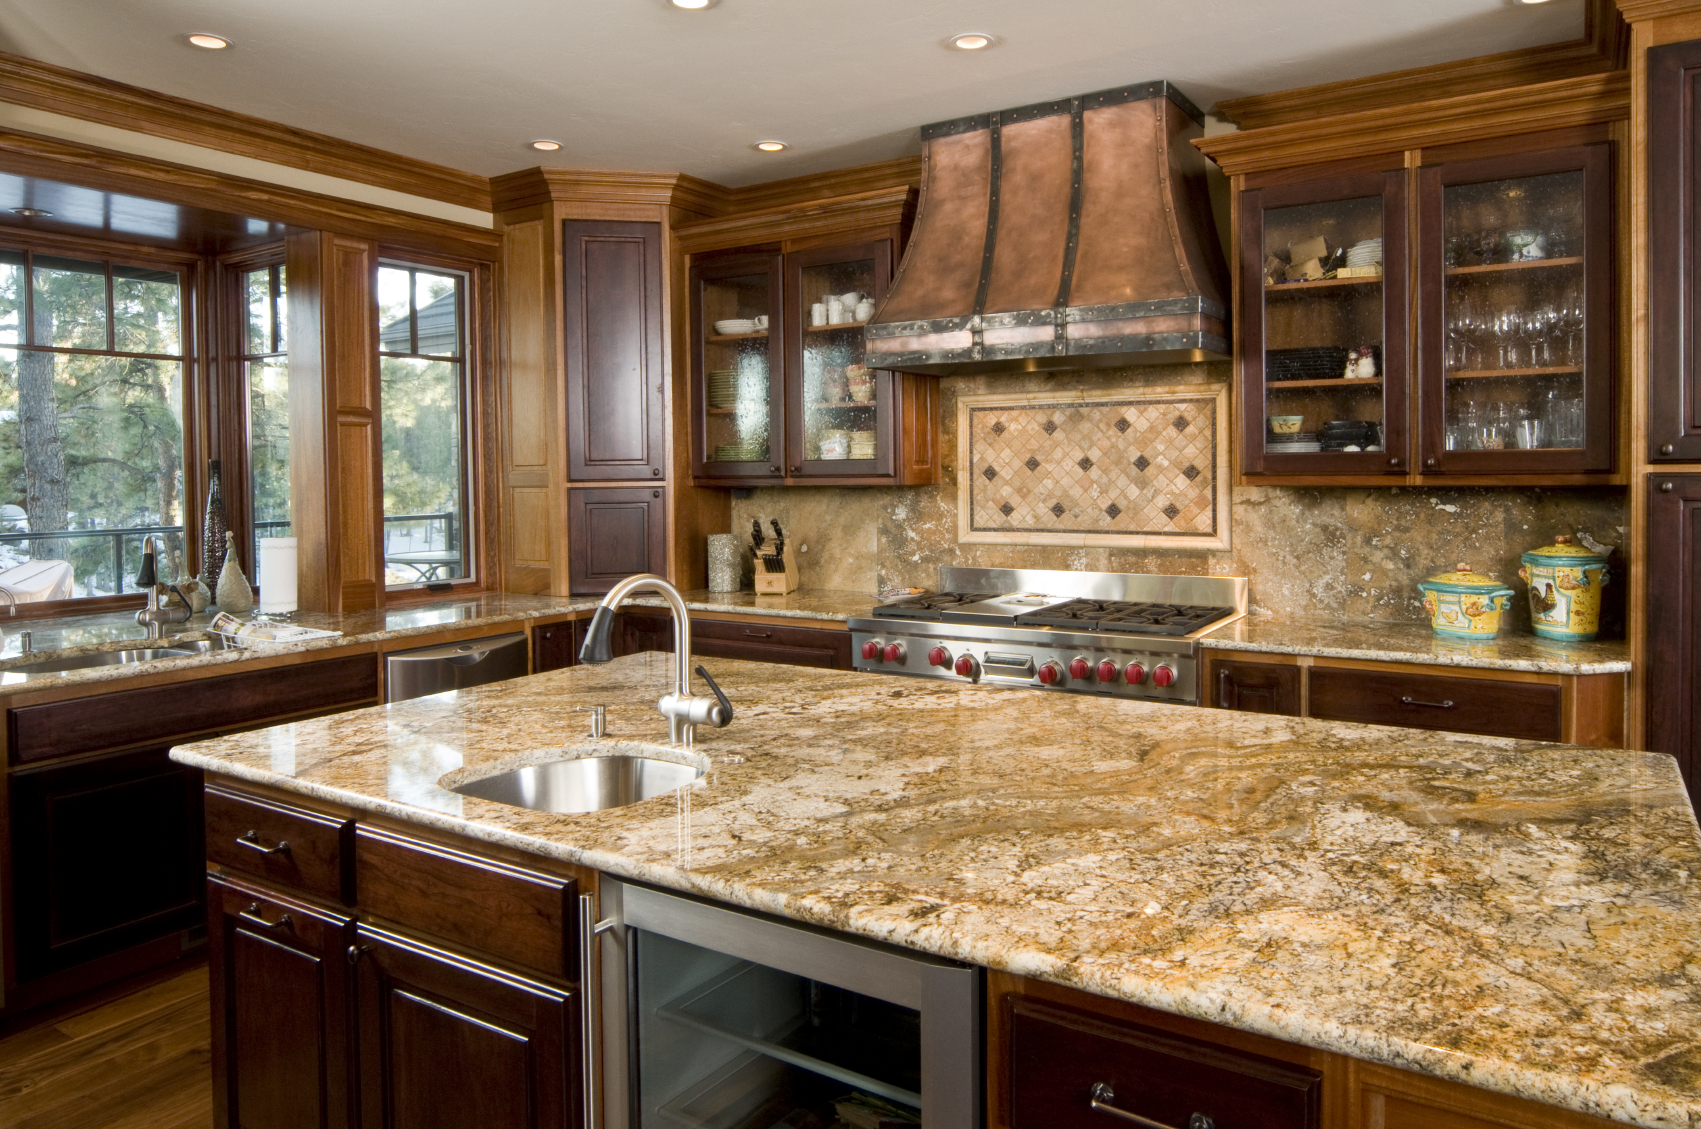 contemporary wood kitchens wooden kitchen countertops Copper tones unify this kitchen featuring dark wood cupboard doors over lighter toned cabinetry with